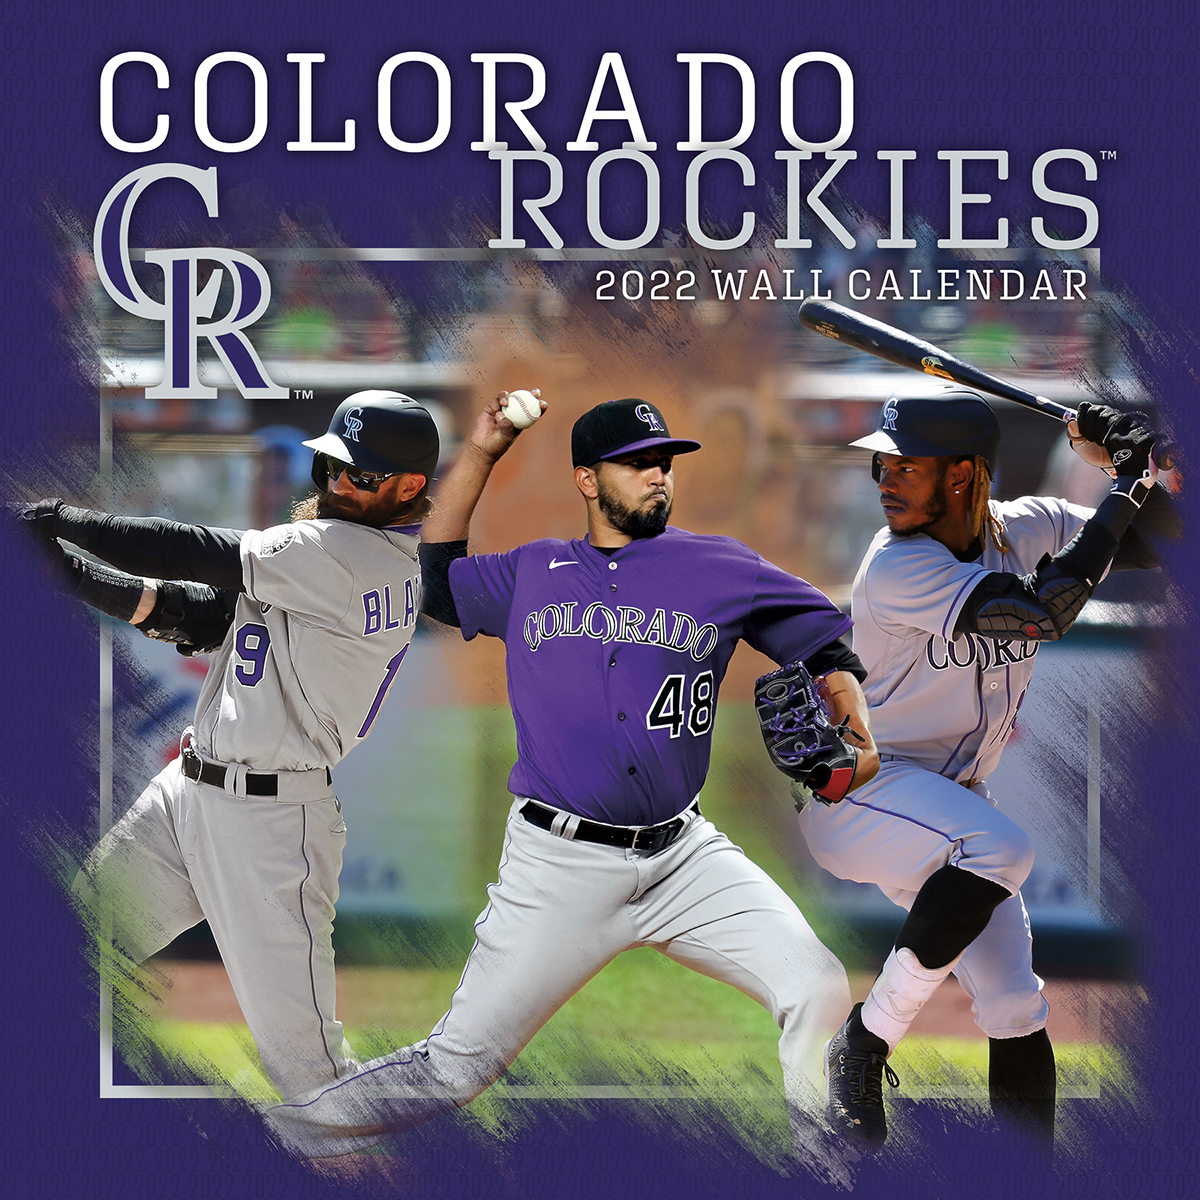 Colorado Rockies 2019 Wall Calendar